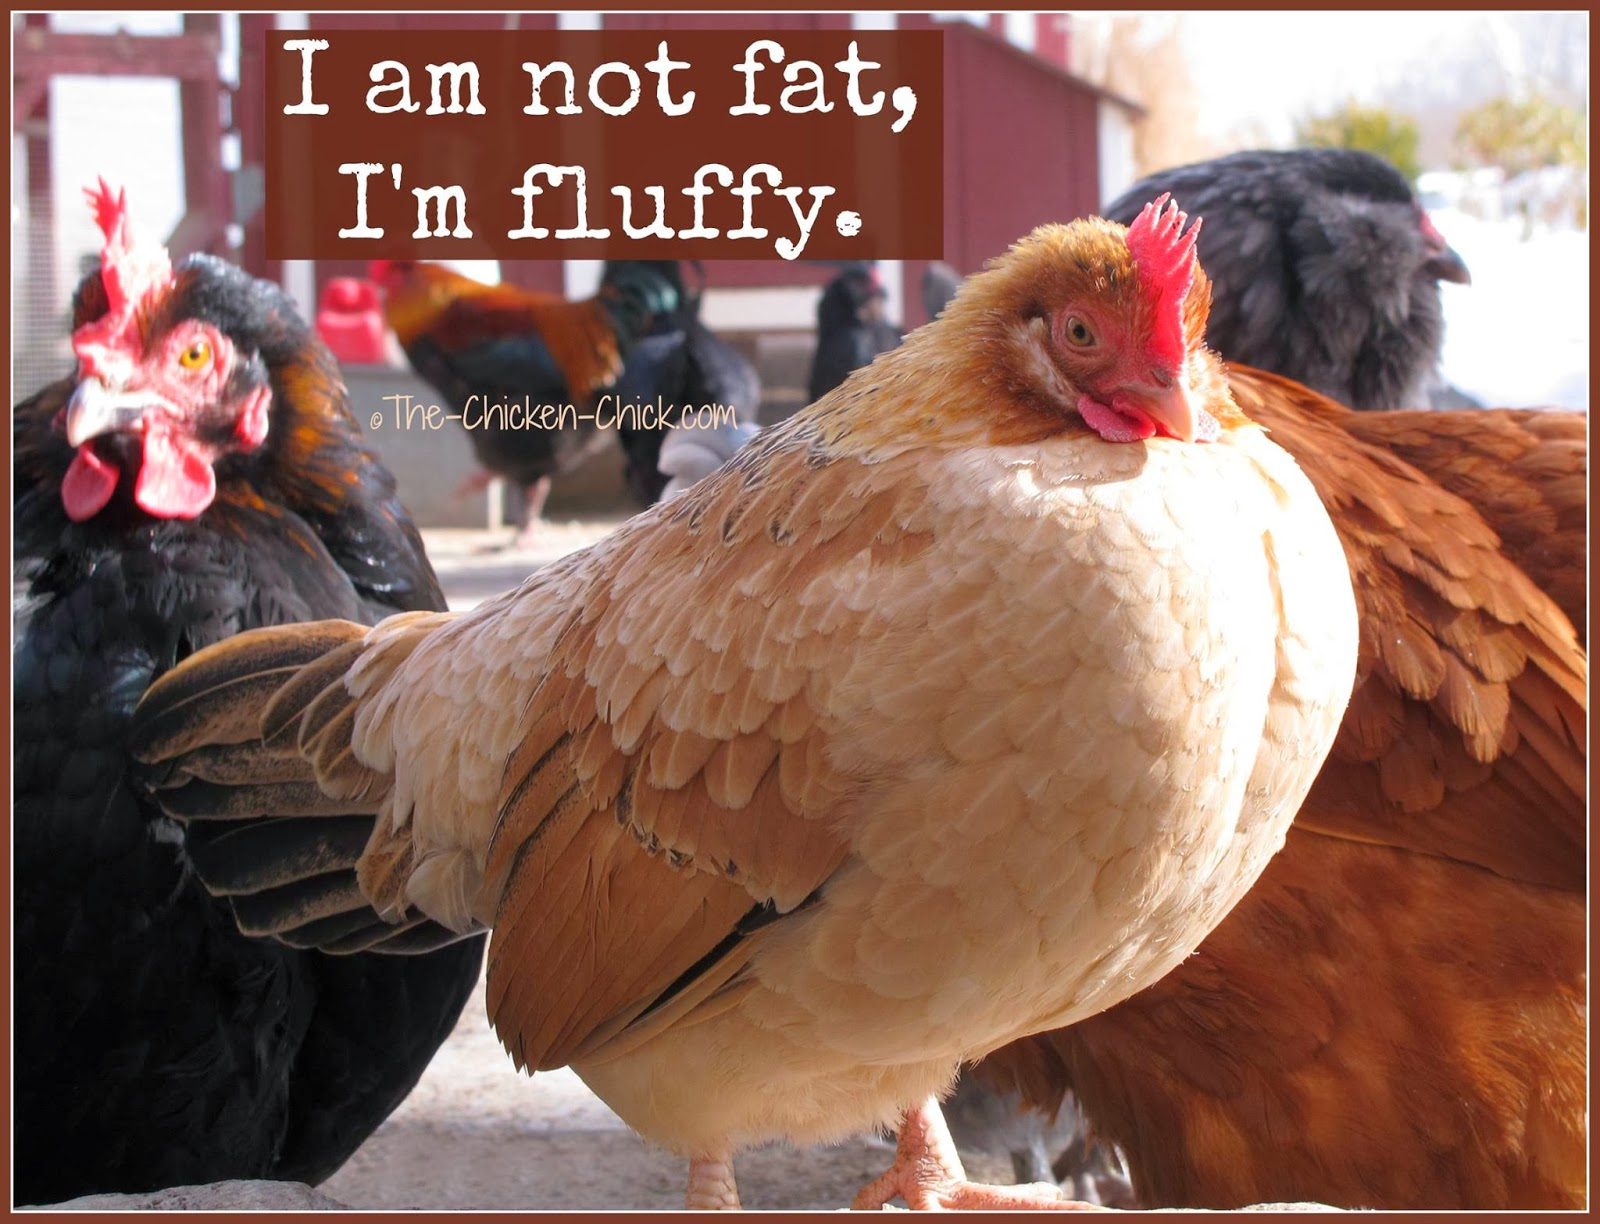 I'm not fat, I'm fluffy.